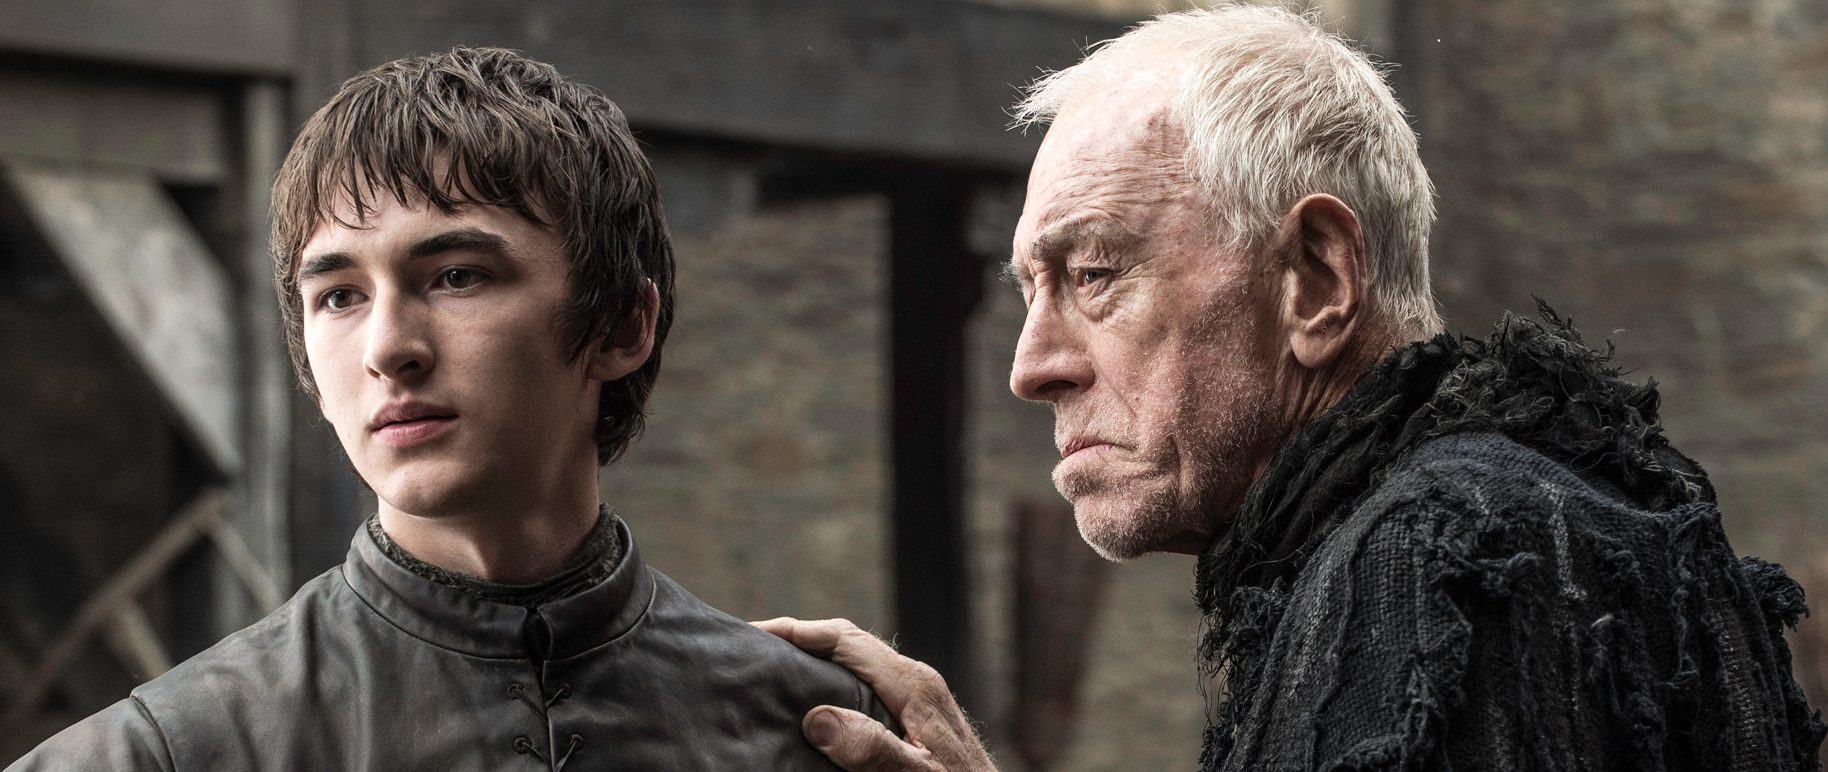 Bran Stark (Isaac Hempstead-Wright) og The Three-Eyed Raven (Max von Sydow) driver historien fremover (og bakover) – i sesong 6 av «Game of Thrones».